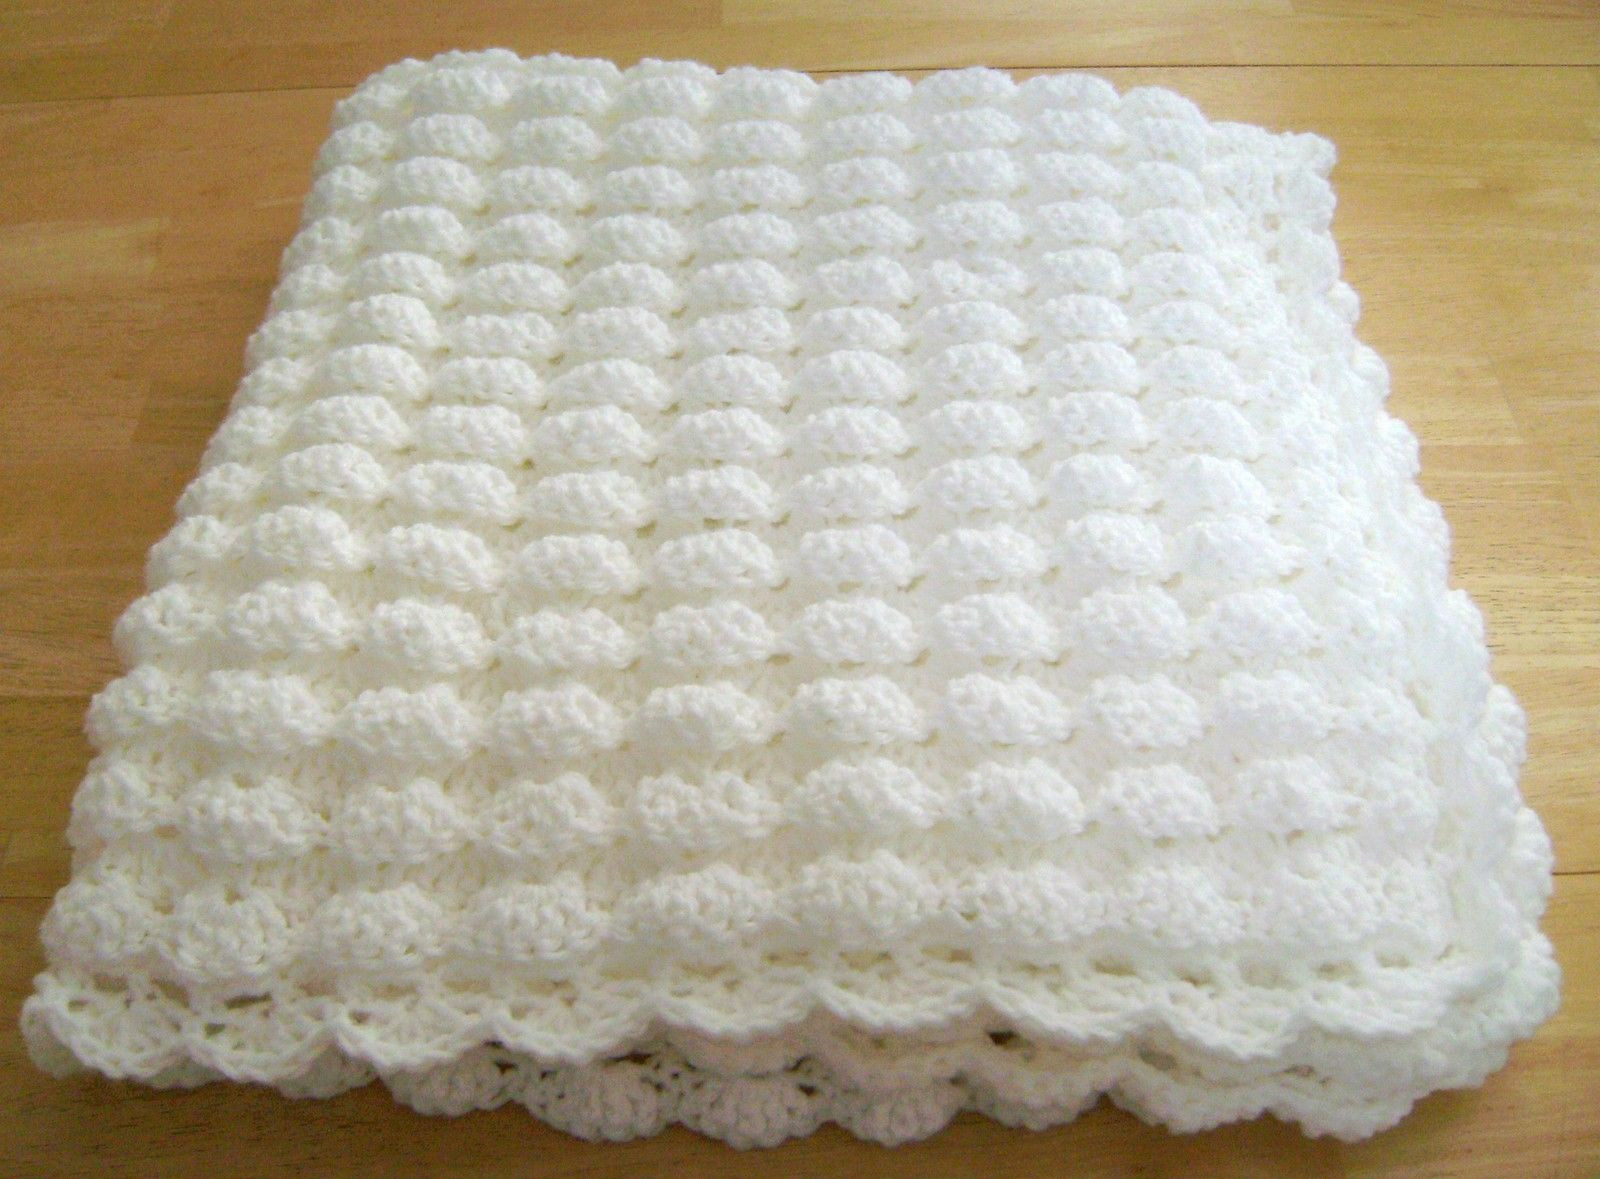 Best Of Crochet White Baby Blanket Shell Pattern Handmade Girl Boy Crochet Shell Baby Blanket Of Lovely 50 Ideas Crochet Shell Baby Blanket